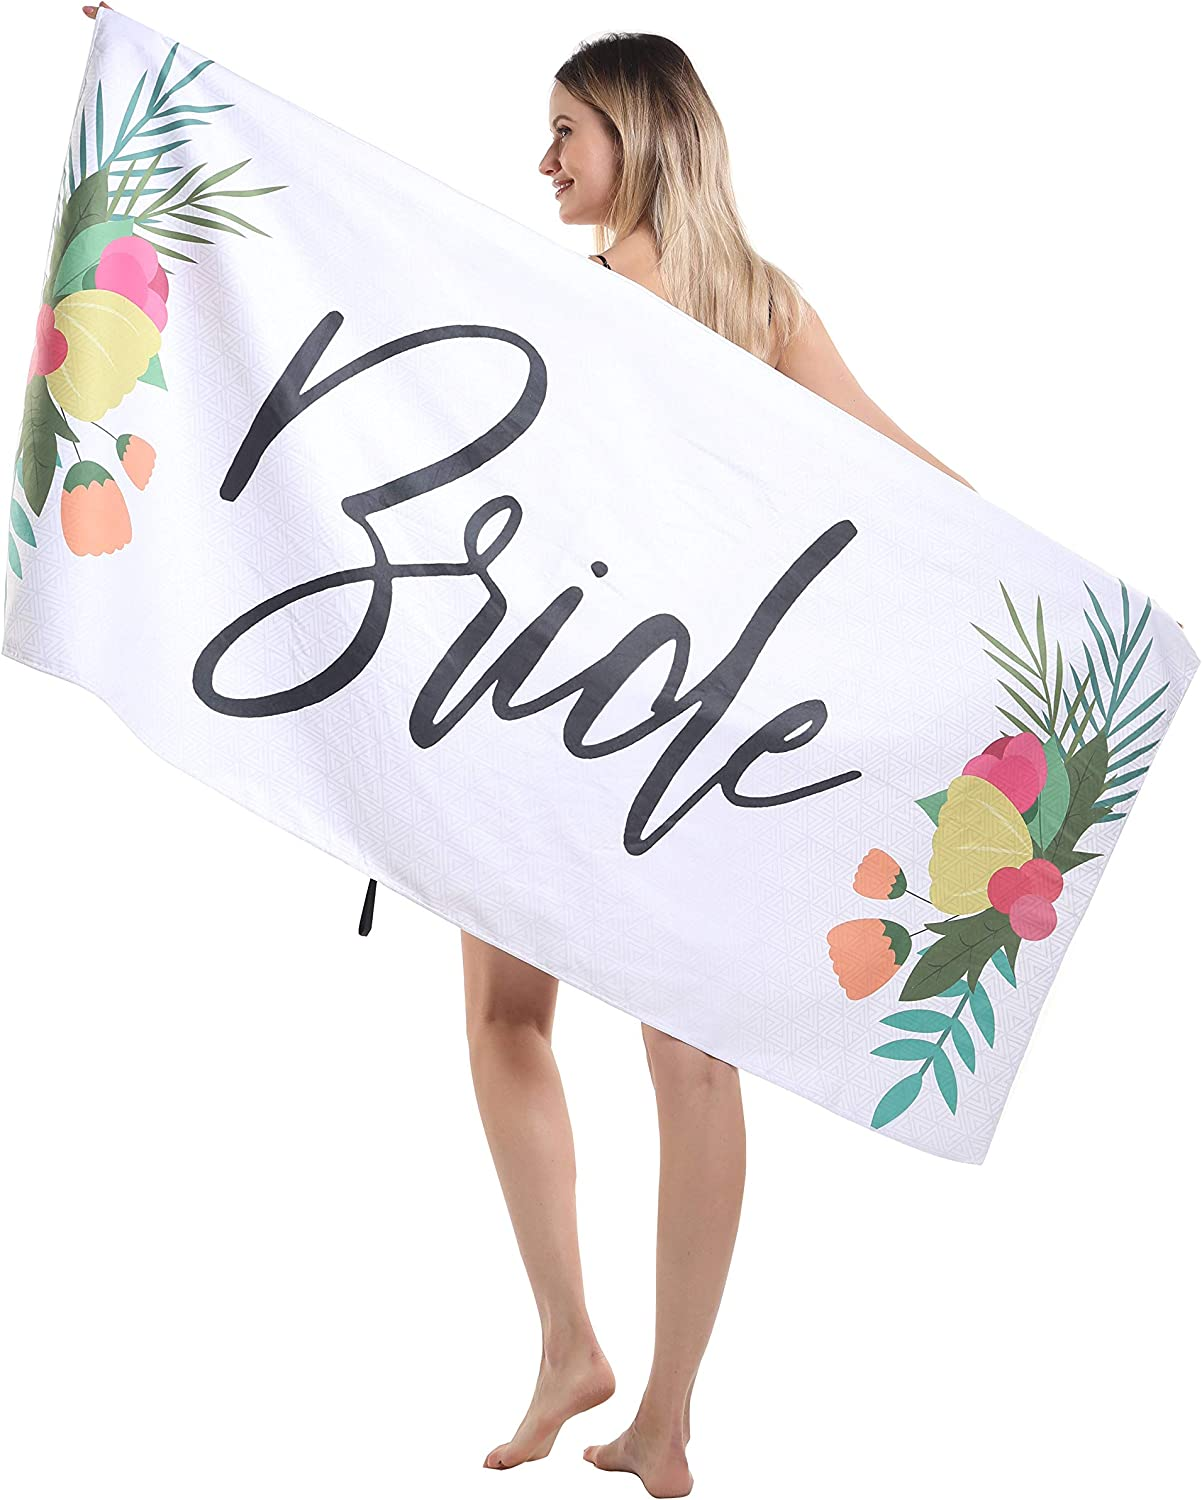 Girlfriend Best Friend Microfiber Beach Towel Mom Wife Sand Resistant Free Proof Sandless Fast Quick Dry Women Compact Cool Travel Pool Towel Ideal Gift for Teen Girls